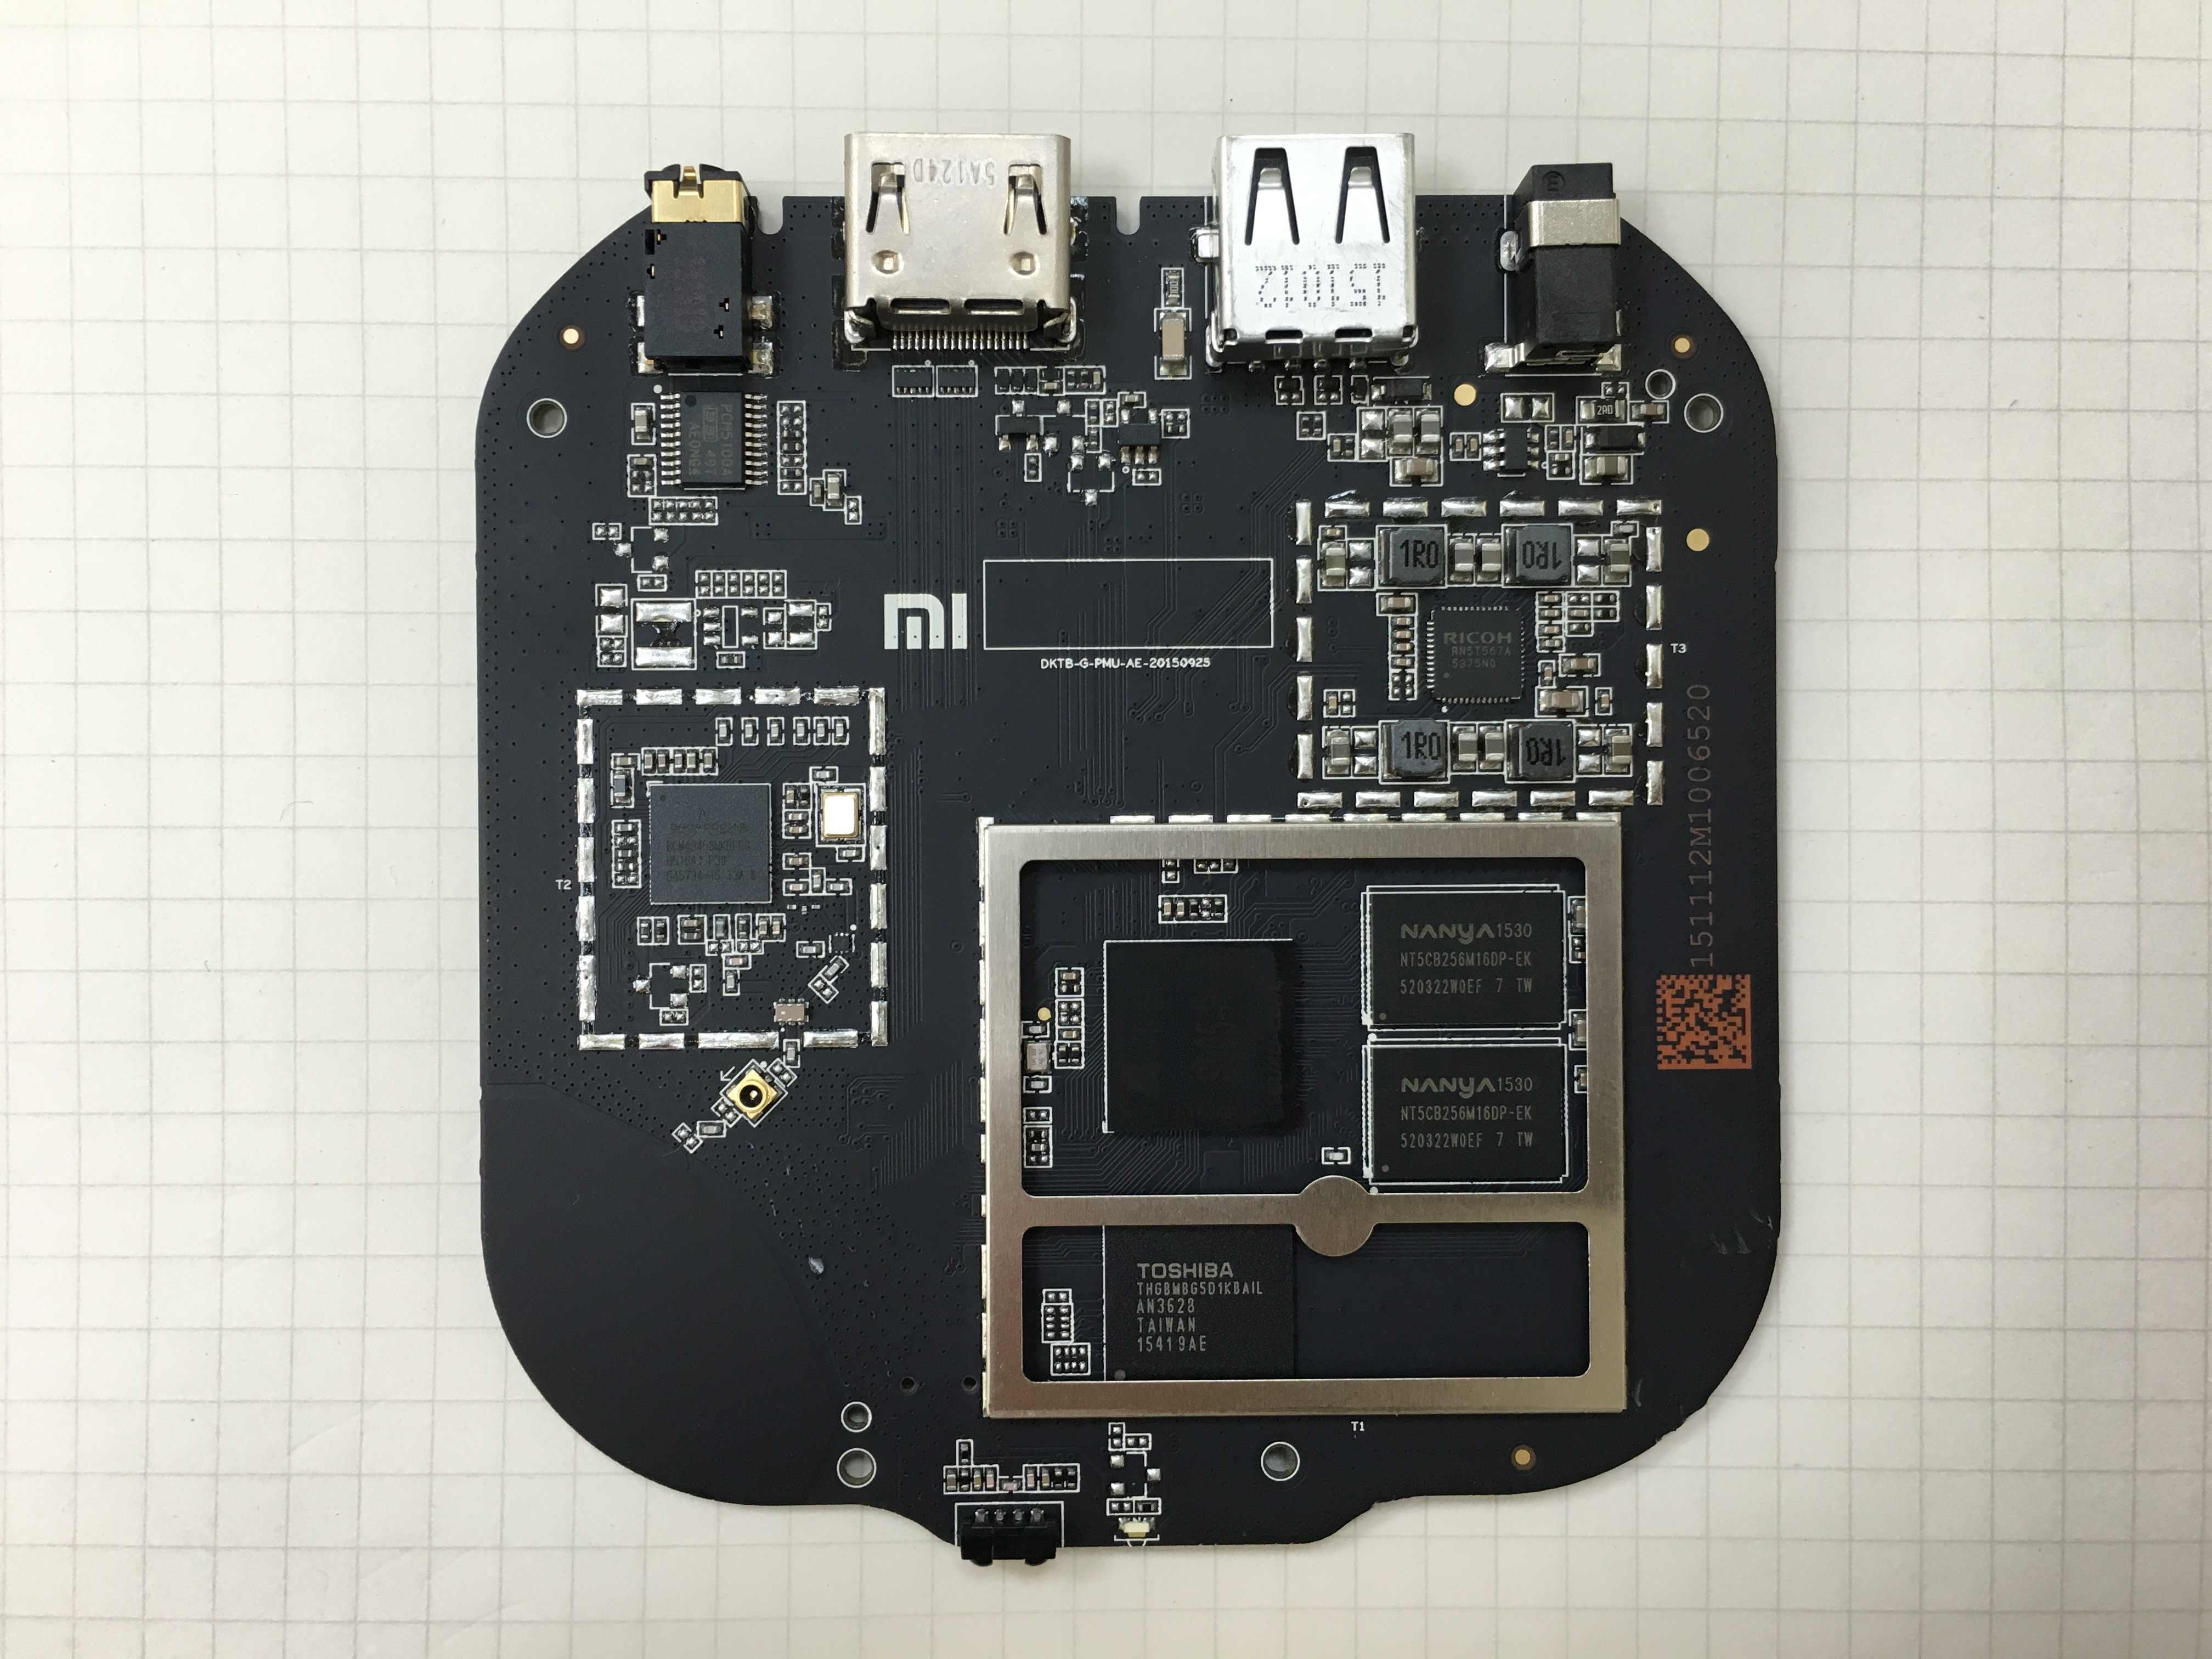 Xiaomi Mi 3 Tv Box Board S Pictures Reveal Amlogic S905 H